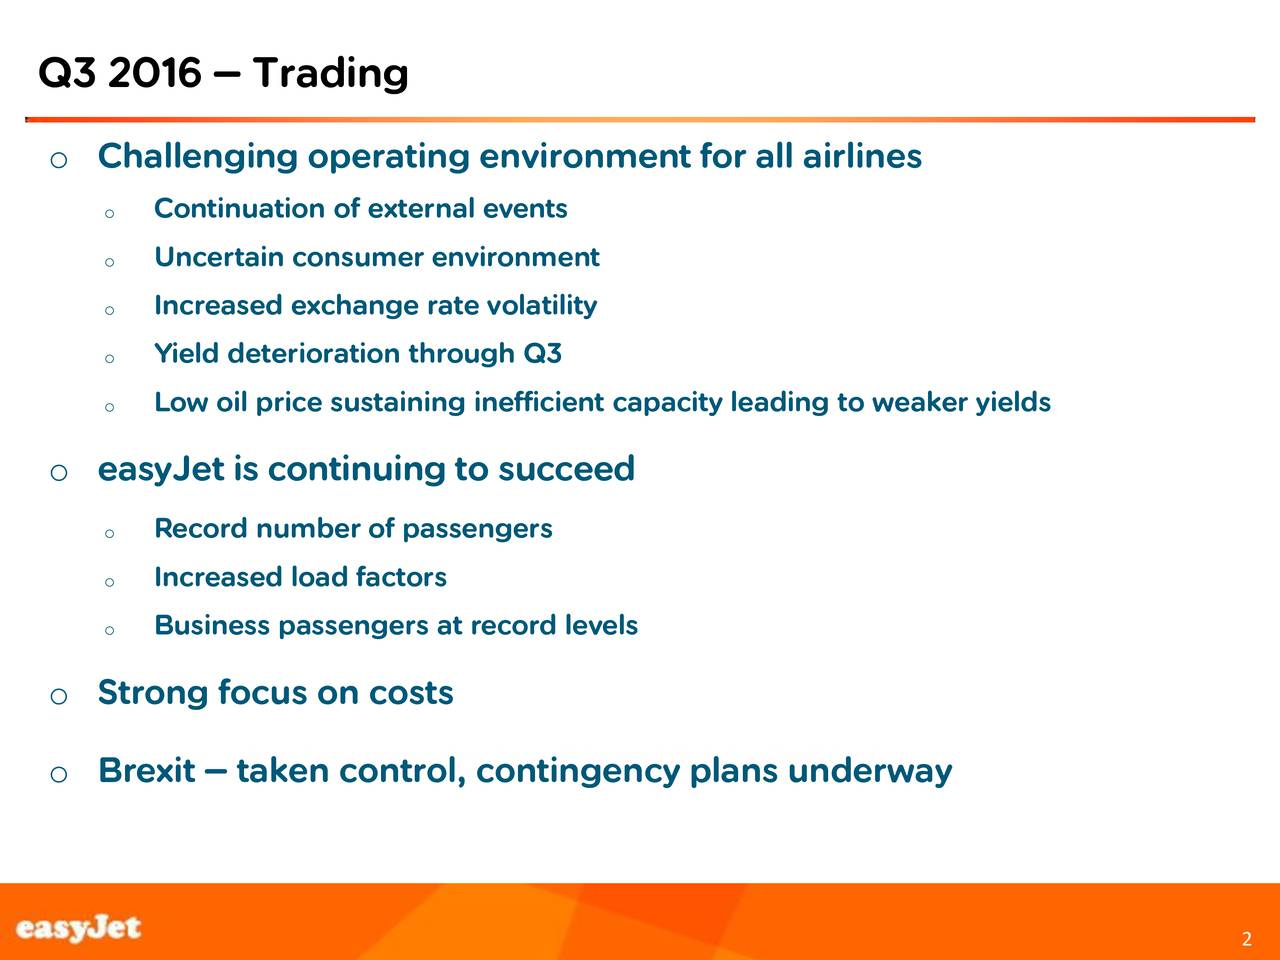 o Challenging operating environment for all airlines o Continuation of external events o Uncertain consumer environment o Increased exchange rate volatility o Yield deterioration through Q3 o Low oil price sustaining inefficient capacity leading to weaker yields o easyJet is continuing to succeed o Record number of passengers o Increased load factors o Business passengers at record levels o Strong focus on costs Footer box on intersect of lines line h=8.03 9 and v=8.75 with font 10pt Arial not bold o Brexit  taken control, contingency plans underway 2 2